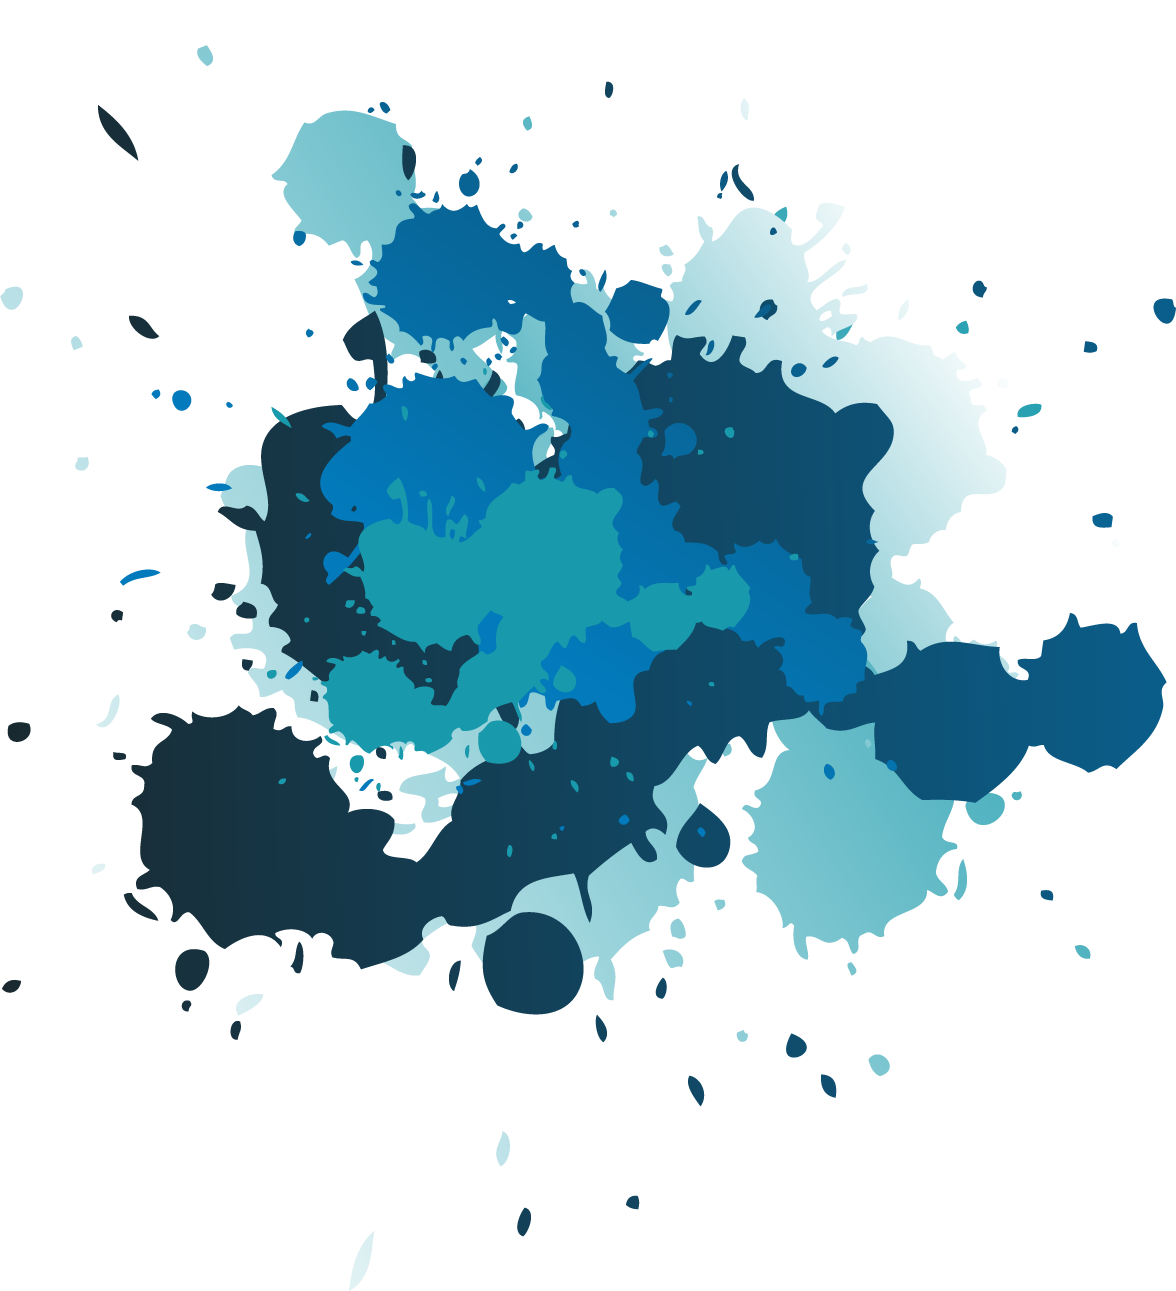 Blue splatter png. Images the art in